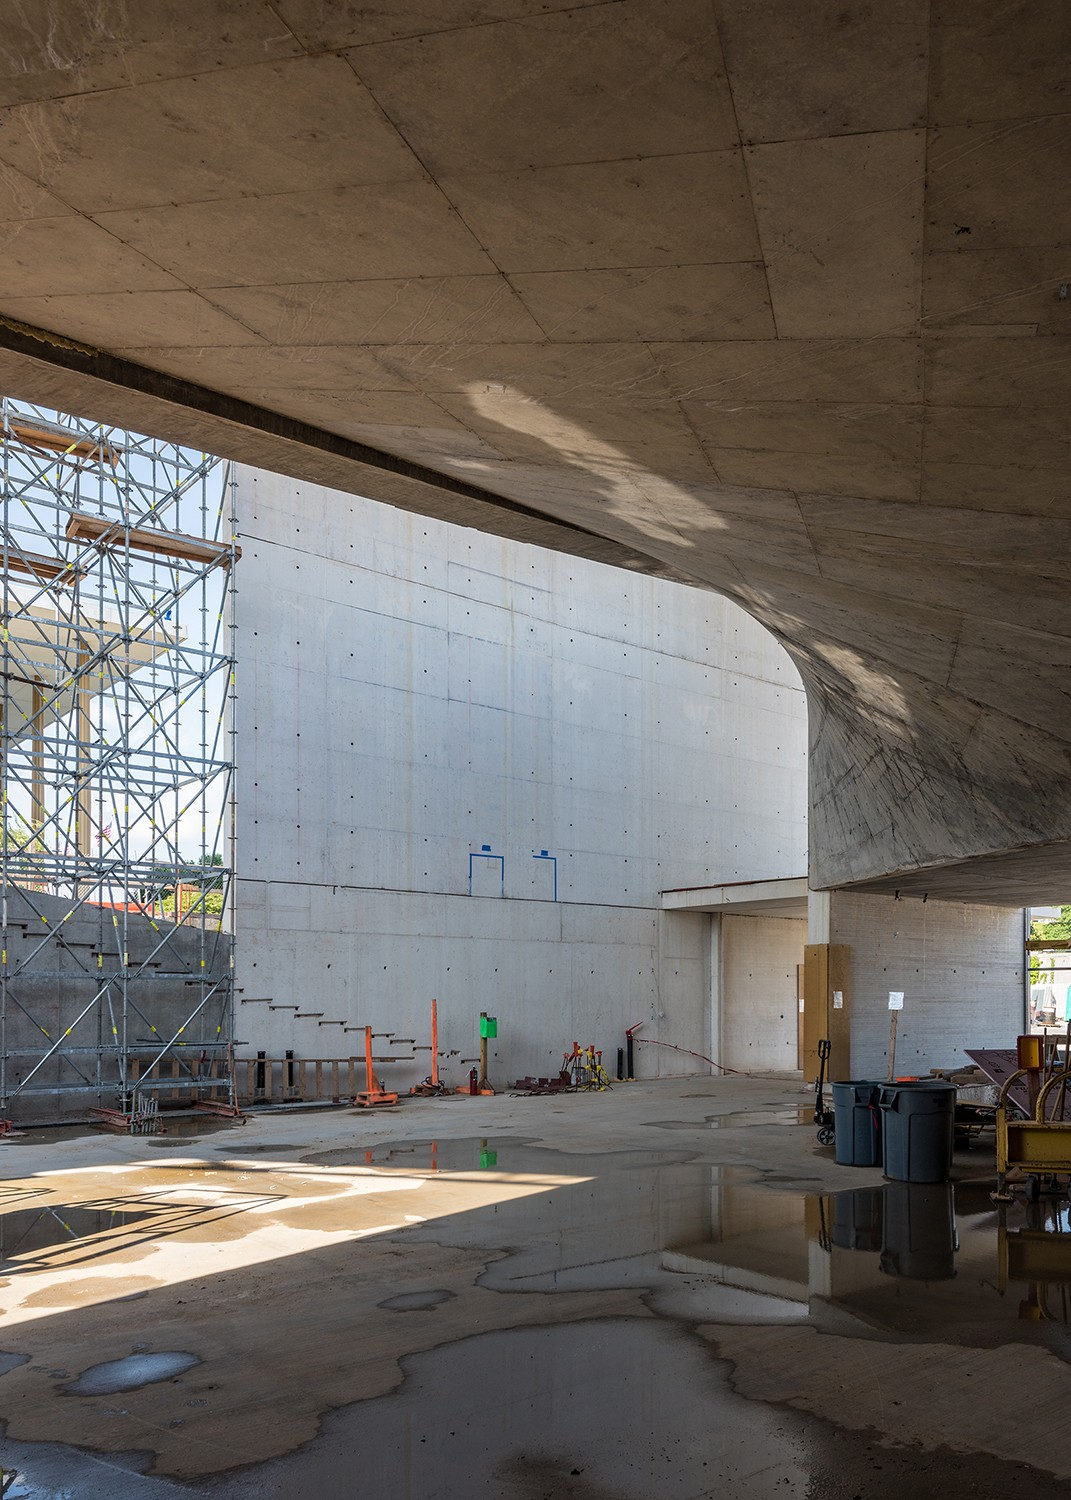 https://s3.us-east-2.amazonaws.com/steven-holl/uploads/projects/project-images/JonathanMorefield_JFK_2018_05_25-Kennedy Center Expansion-DSC_3328_WV.jpg